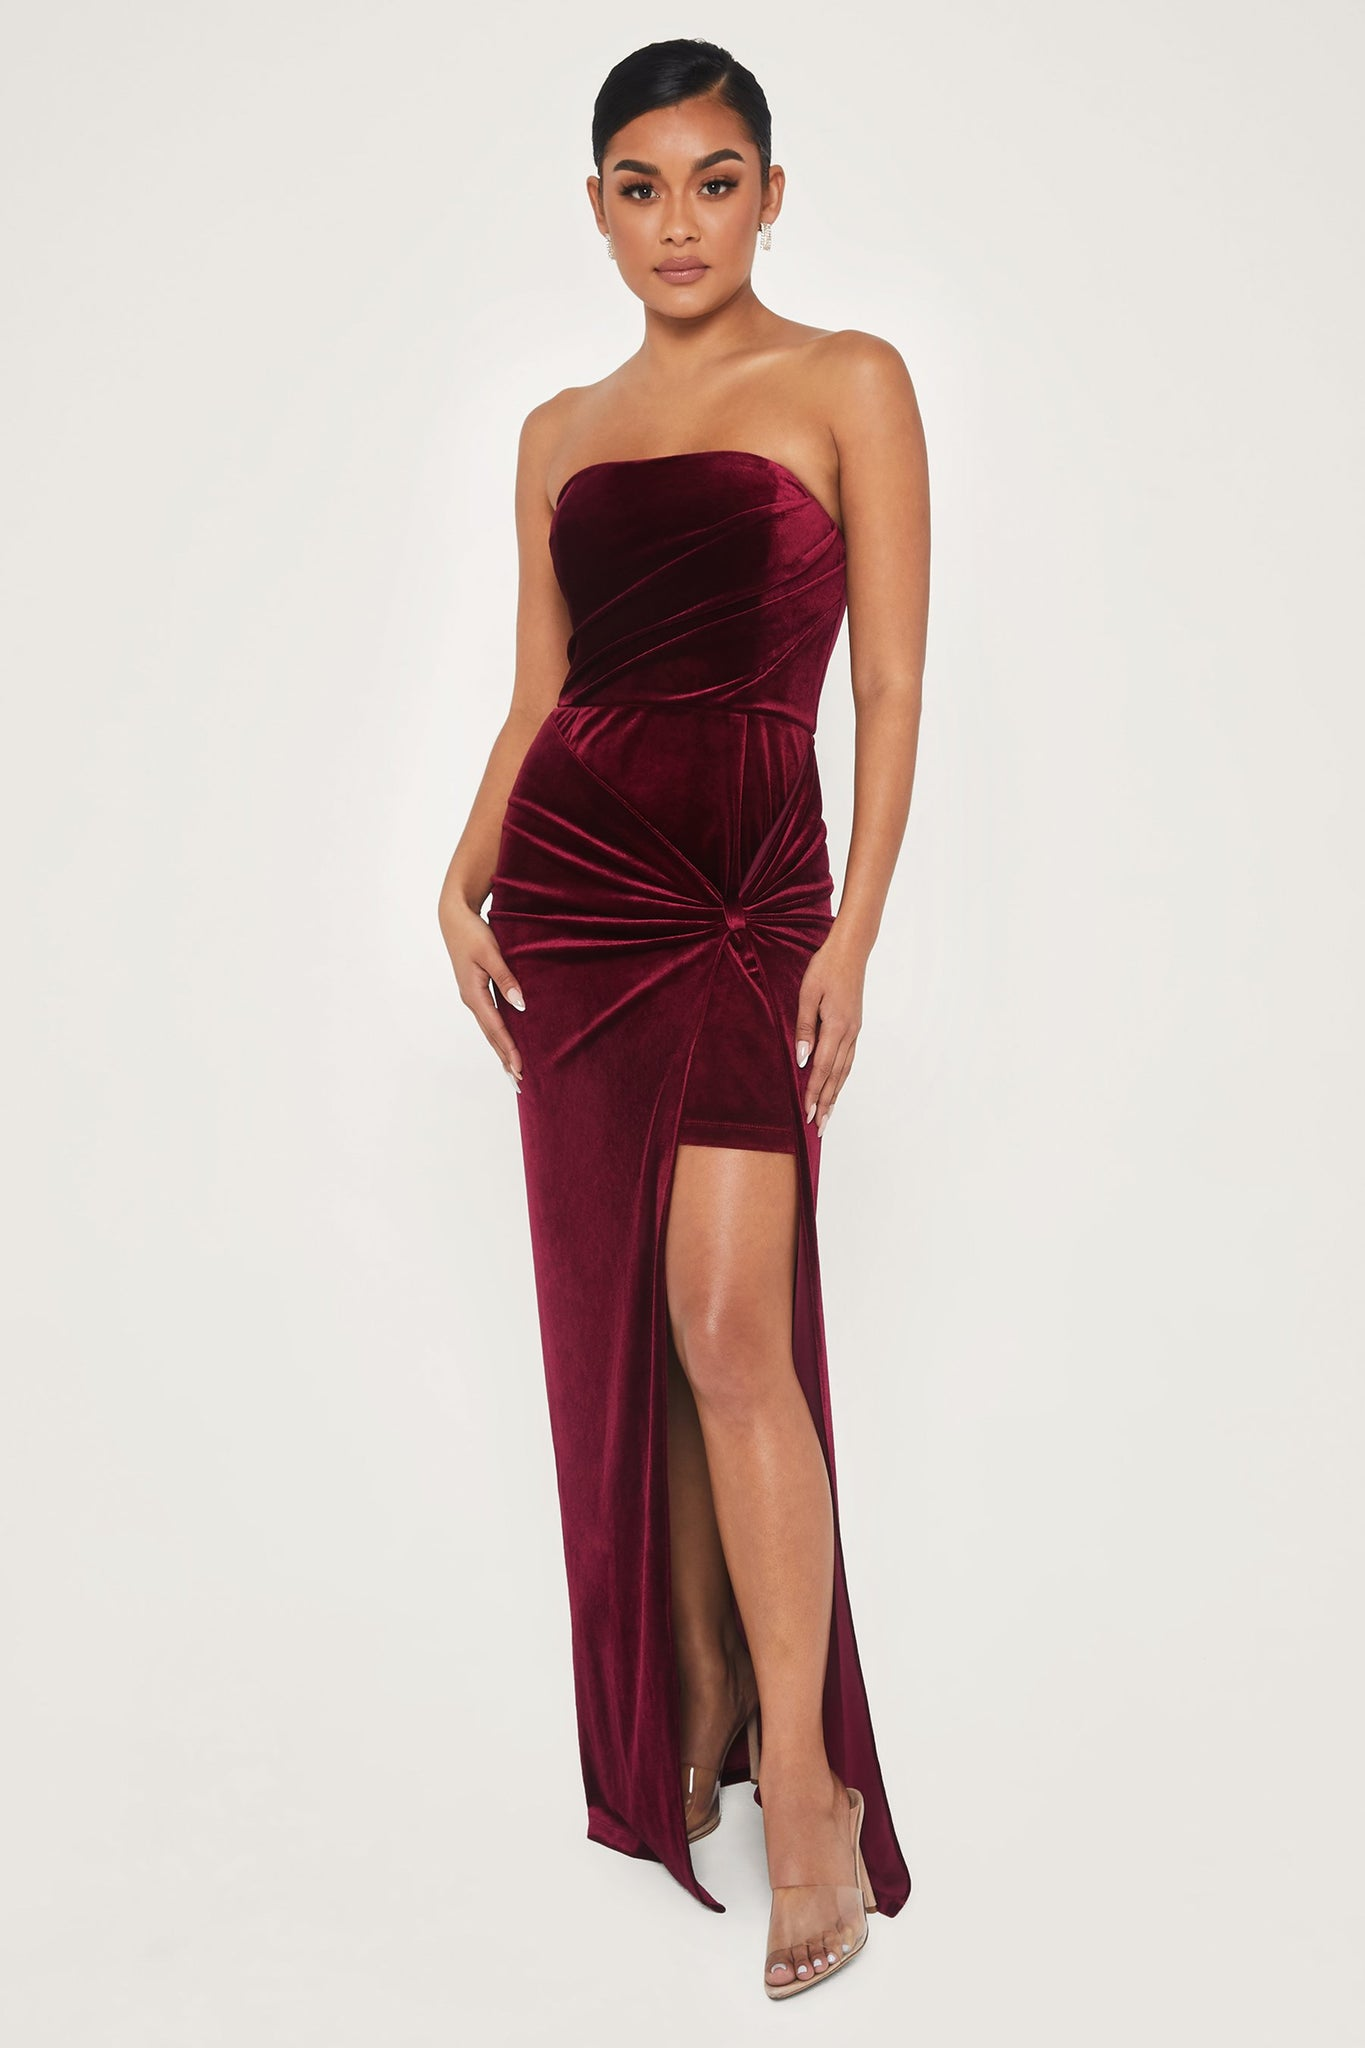 Ressa Strapless High Split Velvet Maxi Dress - Burgundy - MESHKI